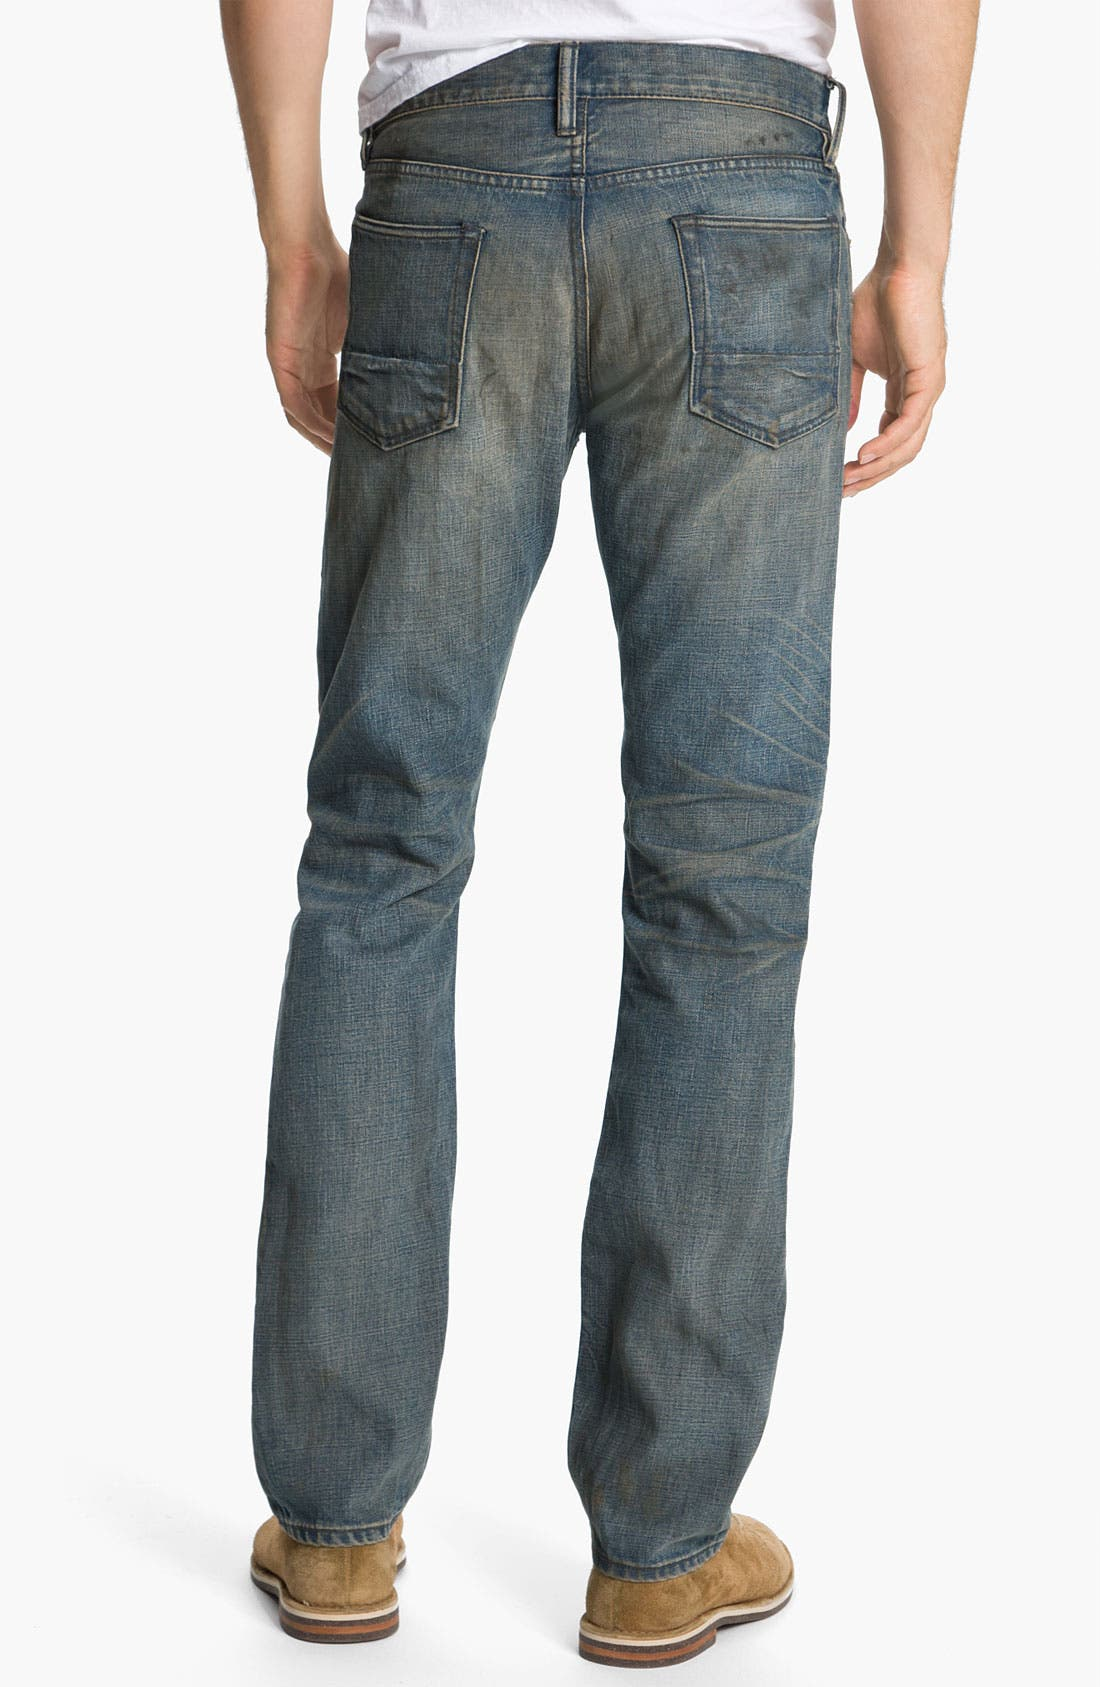 Alternate Image 1 Selected - NSF Clothing Straight Leg Jeans (Wilson)